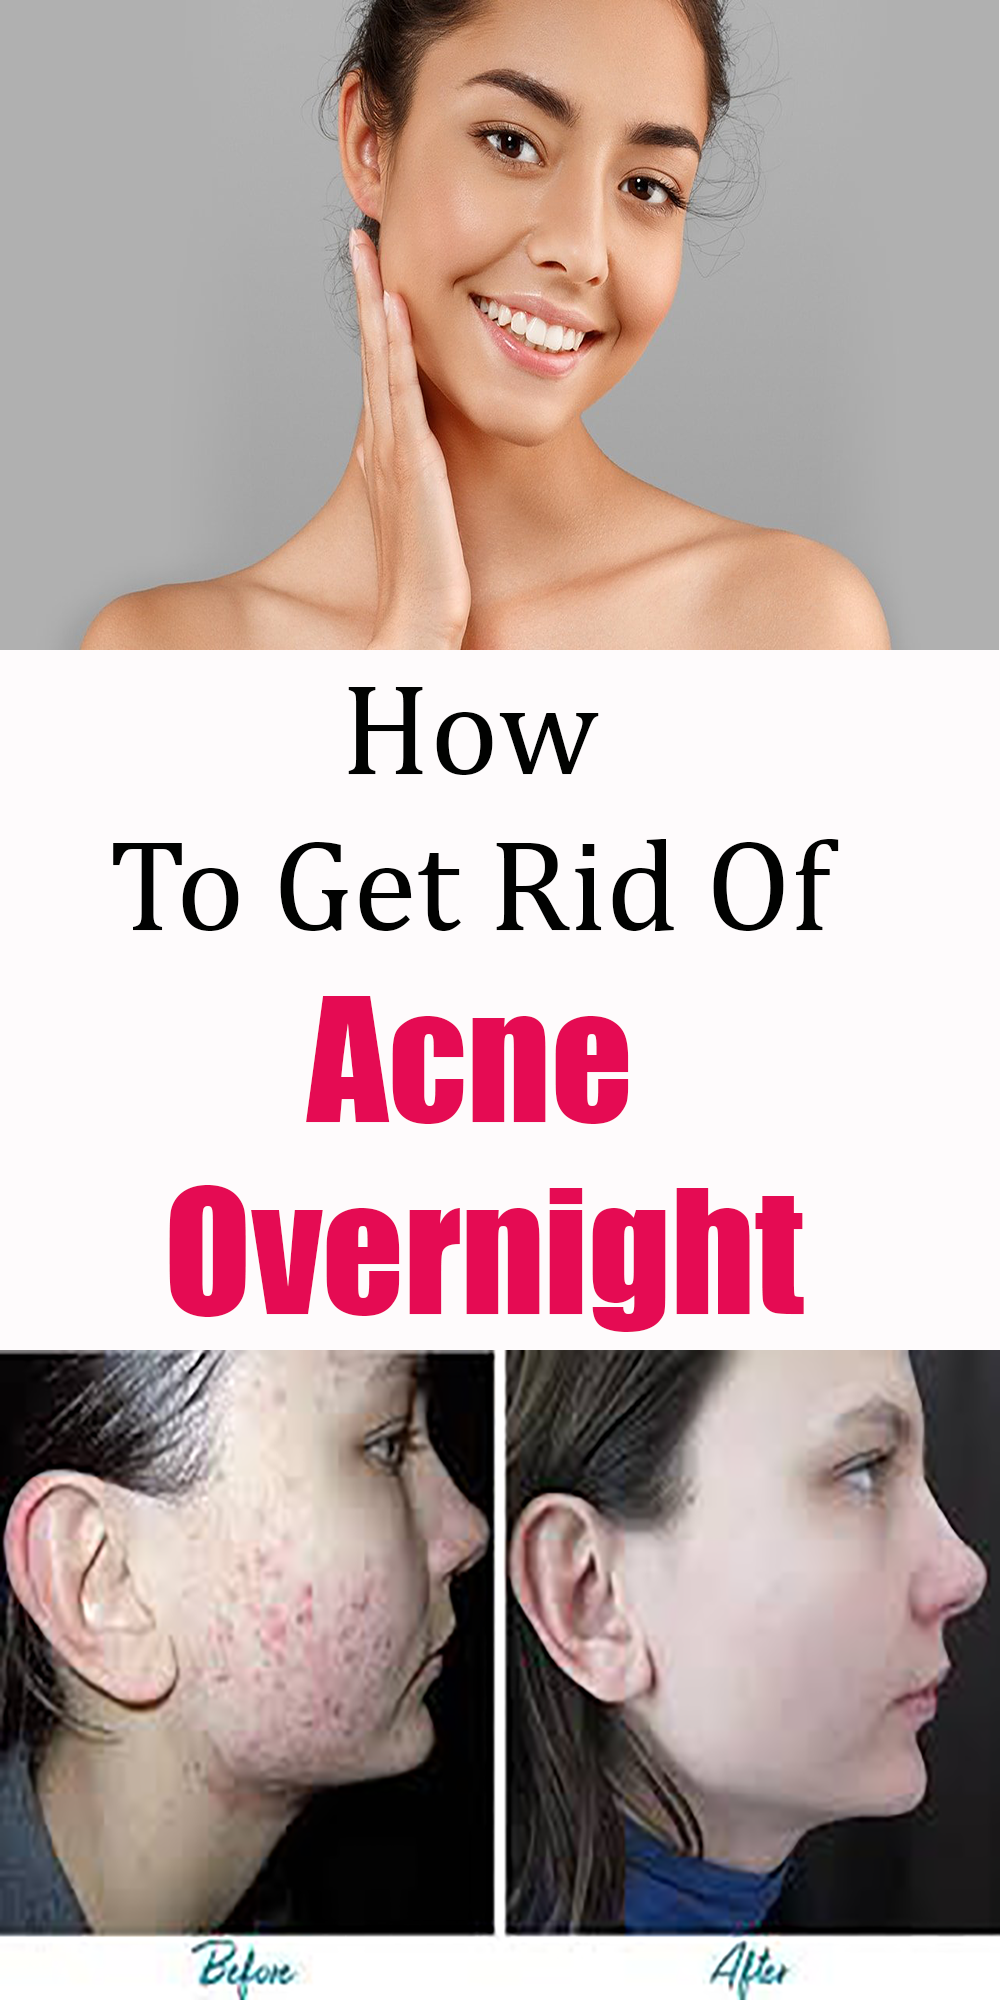 How To Get Rid Of Acne Overnight In 2020 Acne Overnight How To Get Rid Of Acne Acne Scar Remedies